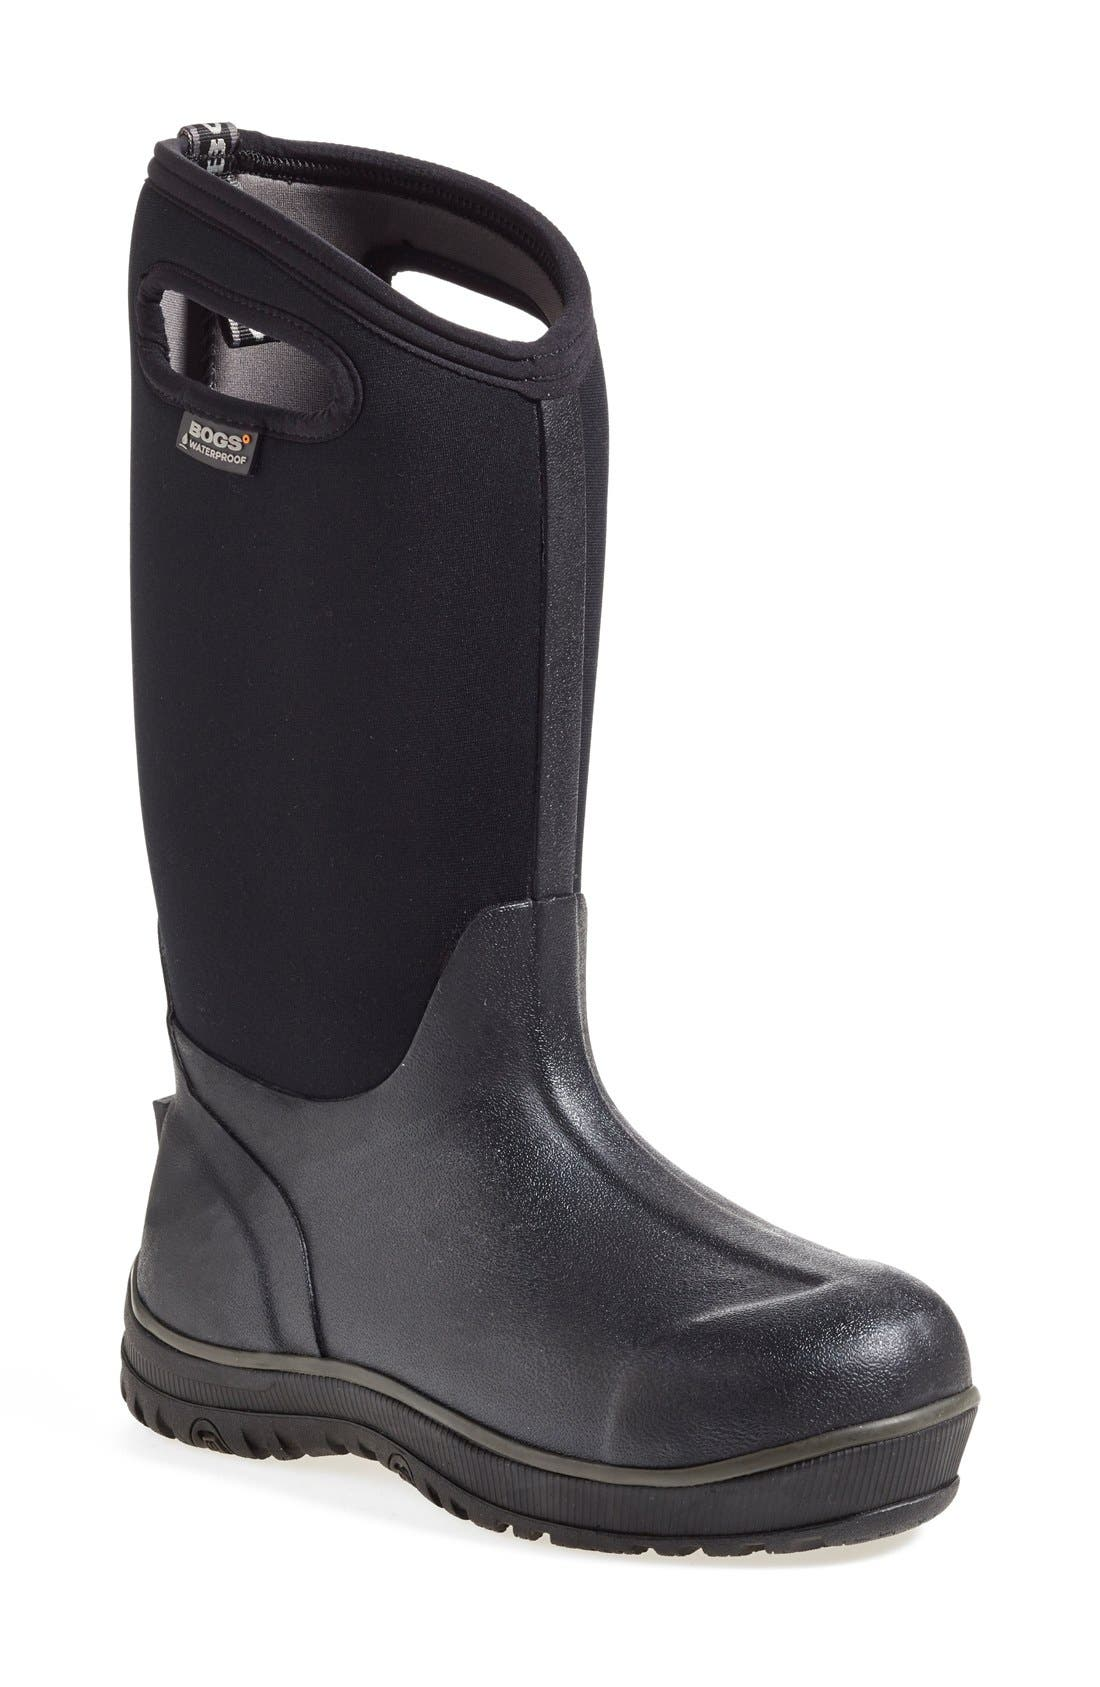 'Classic' Ultra High Waterproof Snow Boot with Cutout Handles,                         Main,                         color, 001